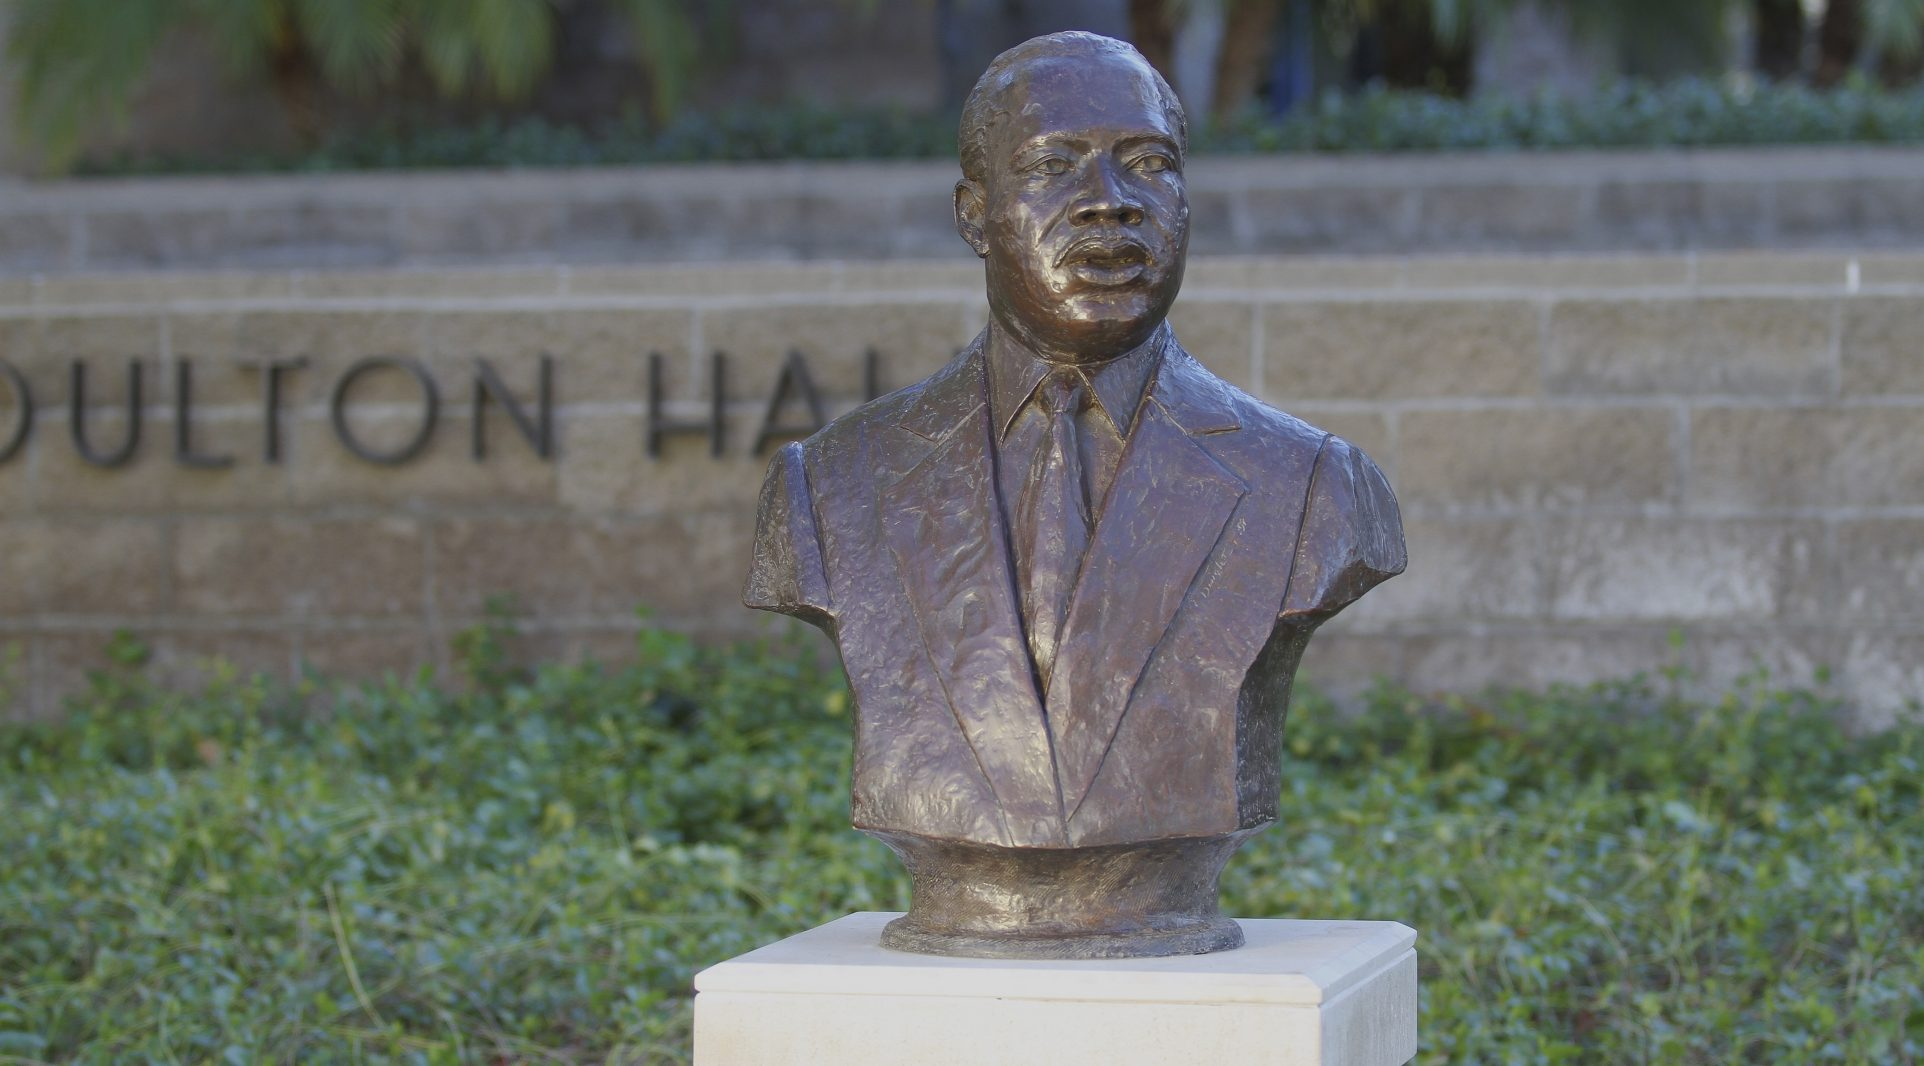 Bust of Martin Luther King Jr. on the Chapman University campus.